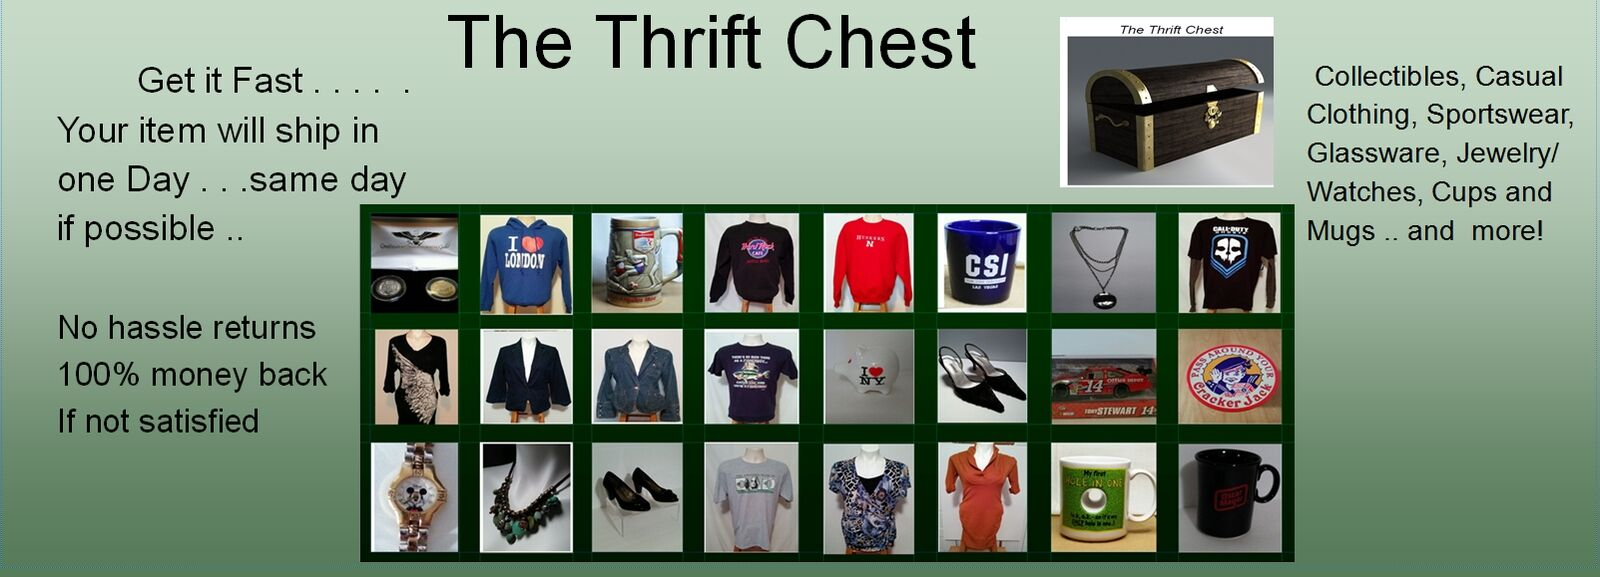 The Thrift Chest